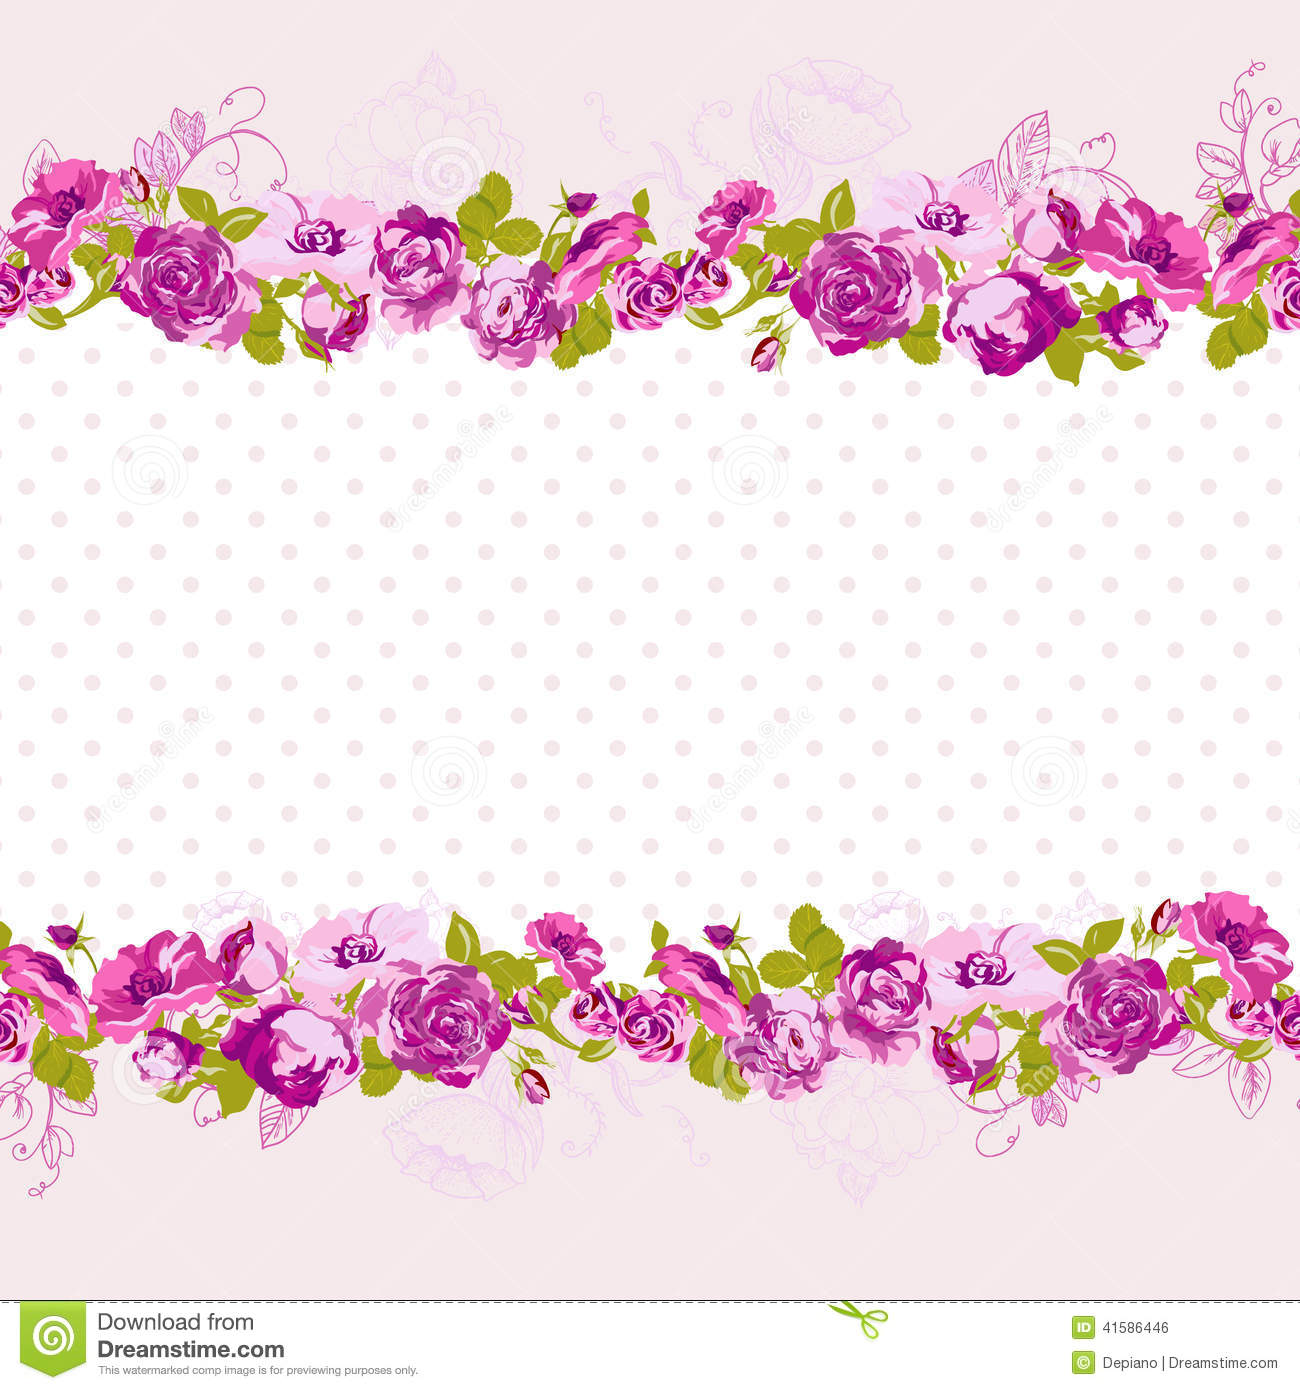 birthday card border design ; seamless-border-blossom-roses-vector-floral-greeting-card-spring-background-wedding-birthday-invitation-design-41586446